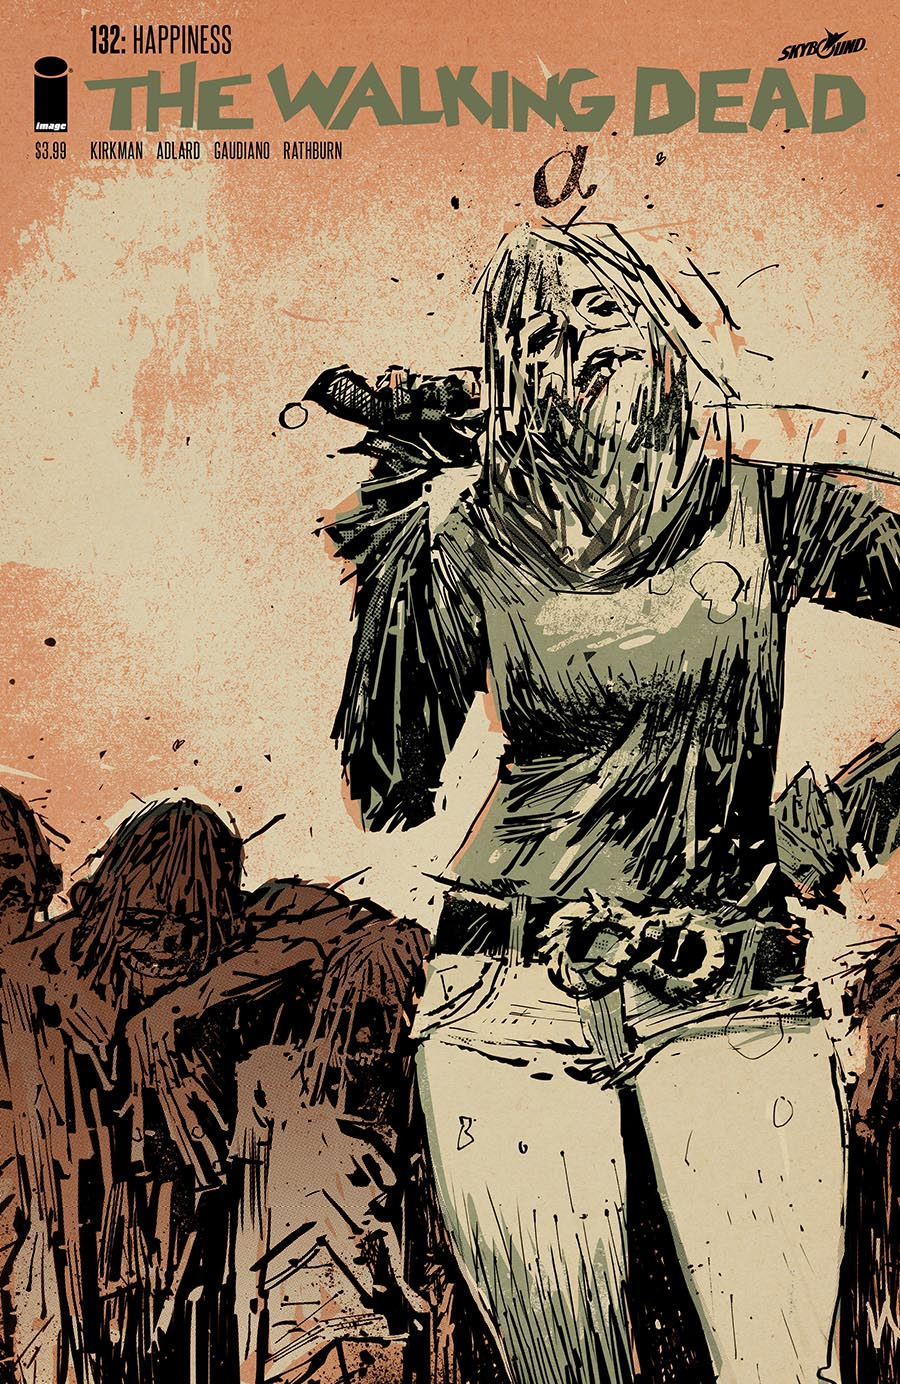 Artist: Ashley Wood First appearance of new recurring villain Alpha, leader of the Whisperers.